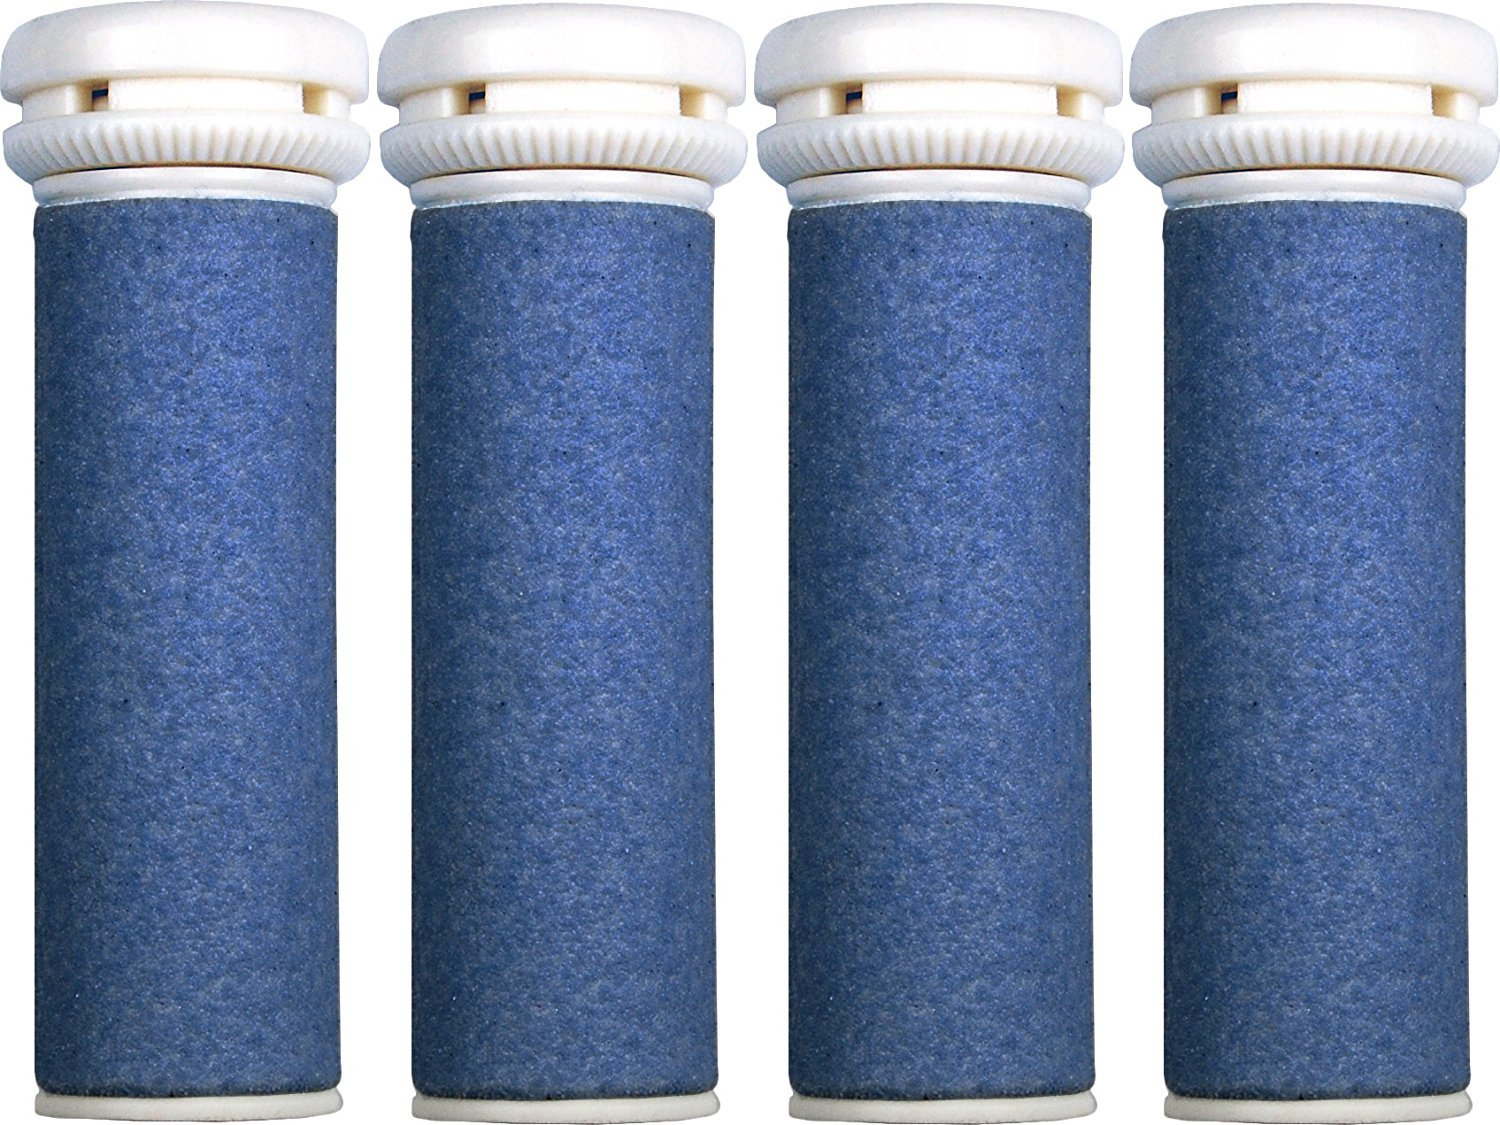 4 x Scholl Express Pedi Compatible Refill Extra Coarse Replacement Rollers HealthCenter